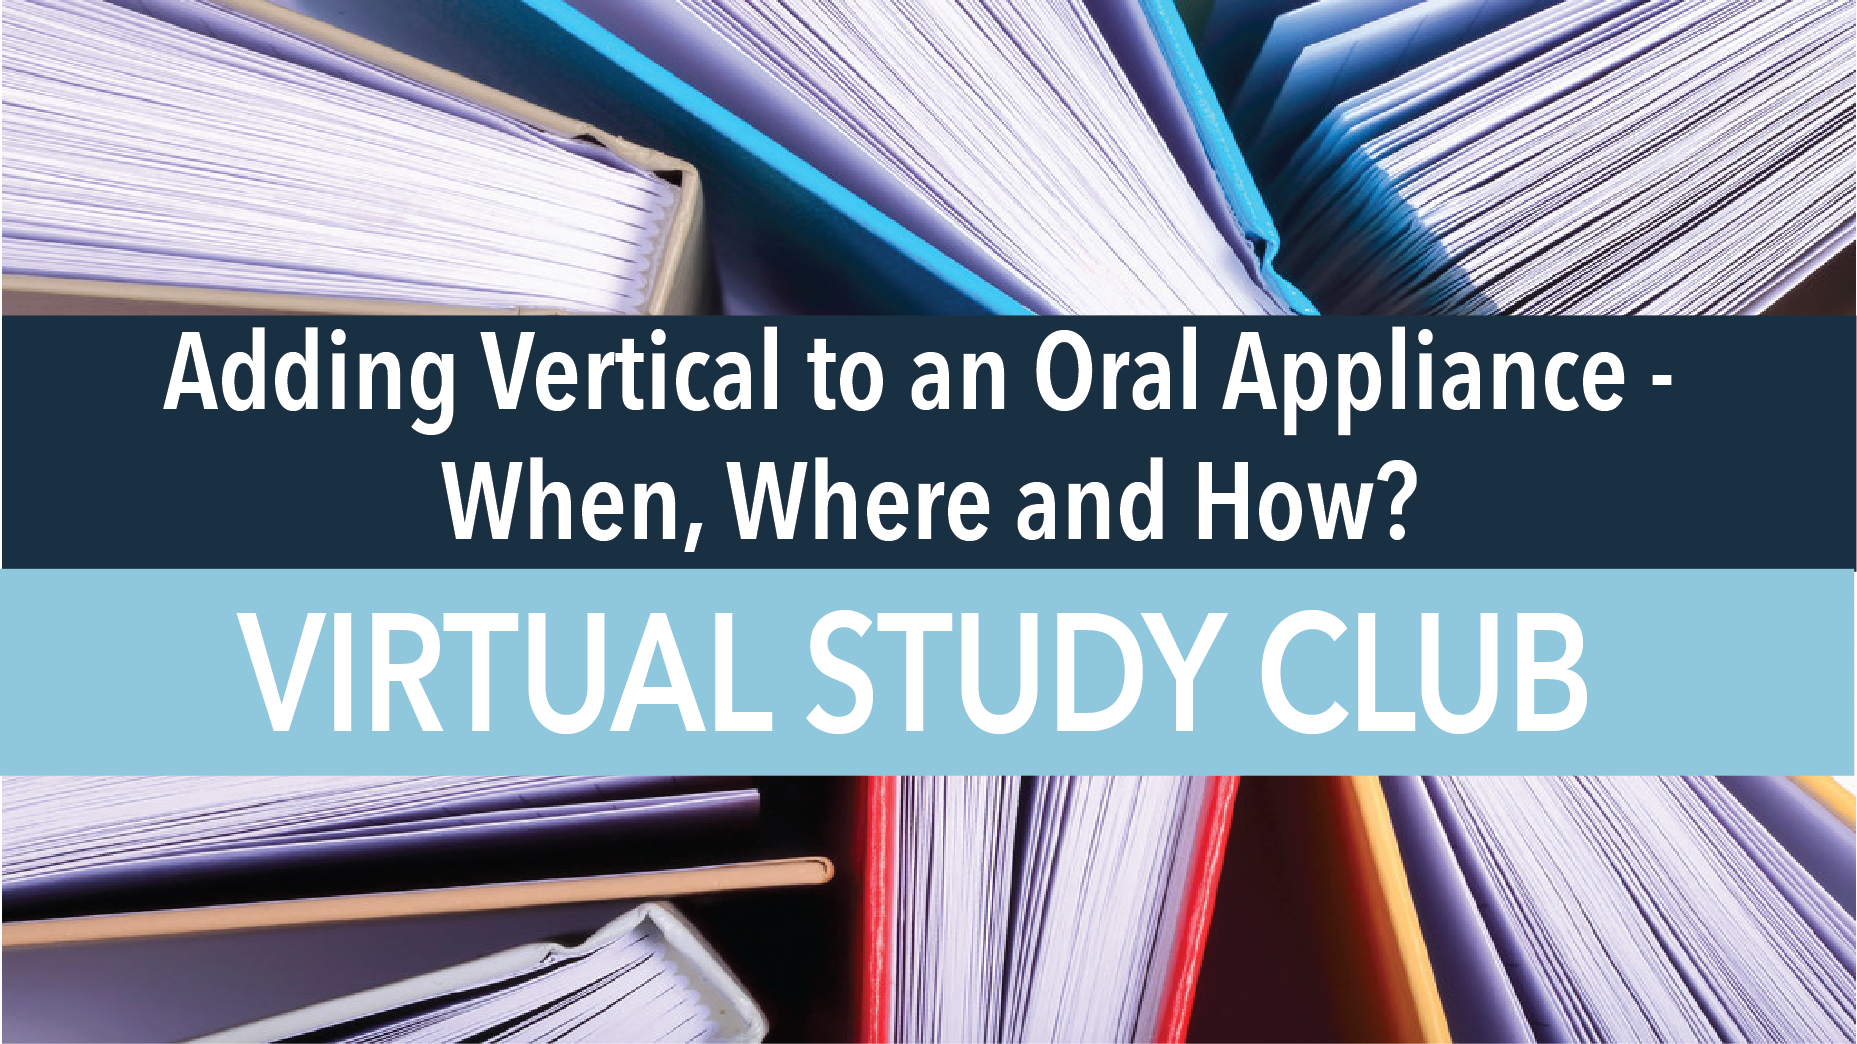 Adding Vertical to an Oral Appliance - When, Where and How?.png